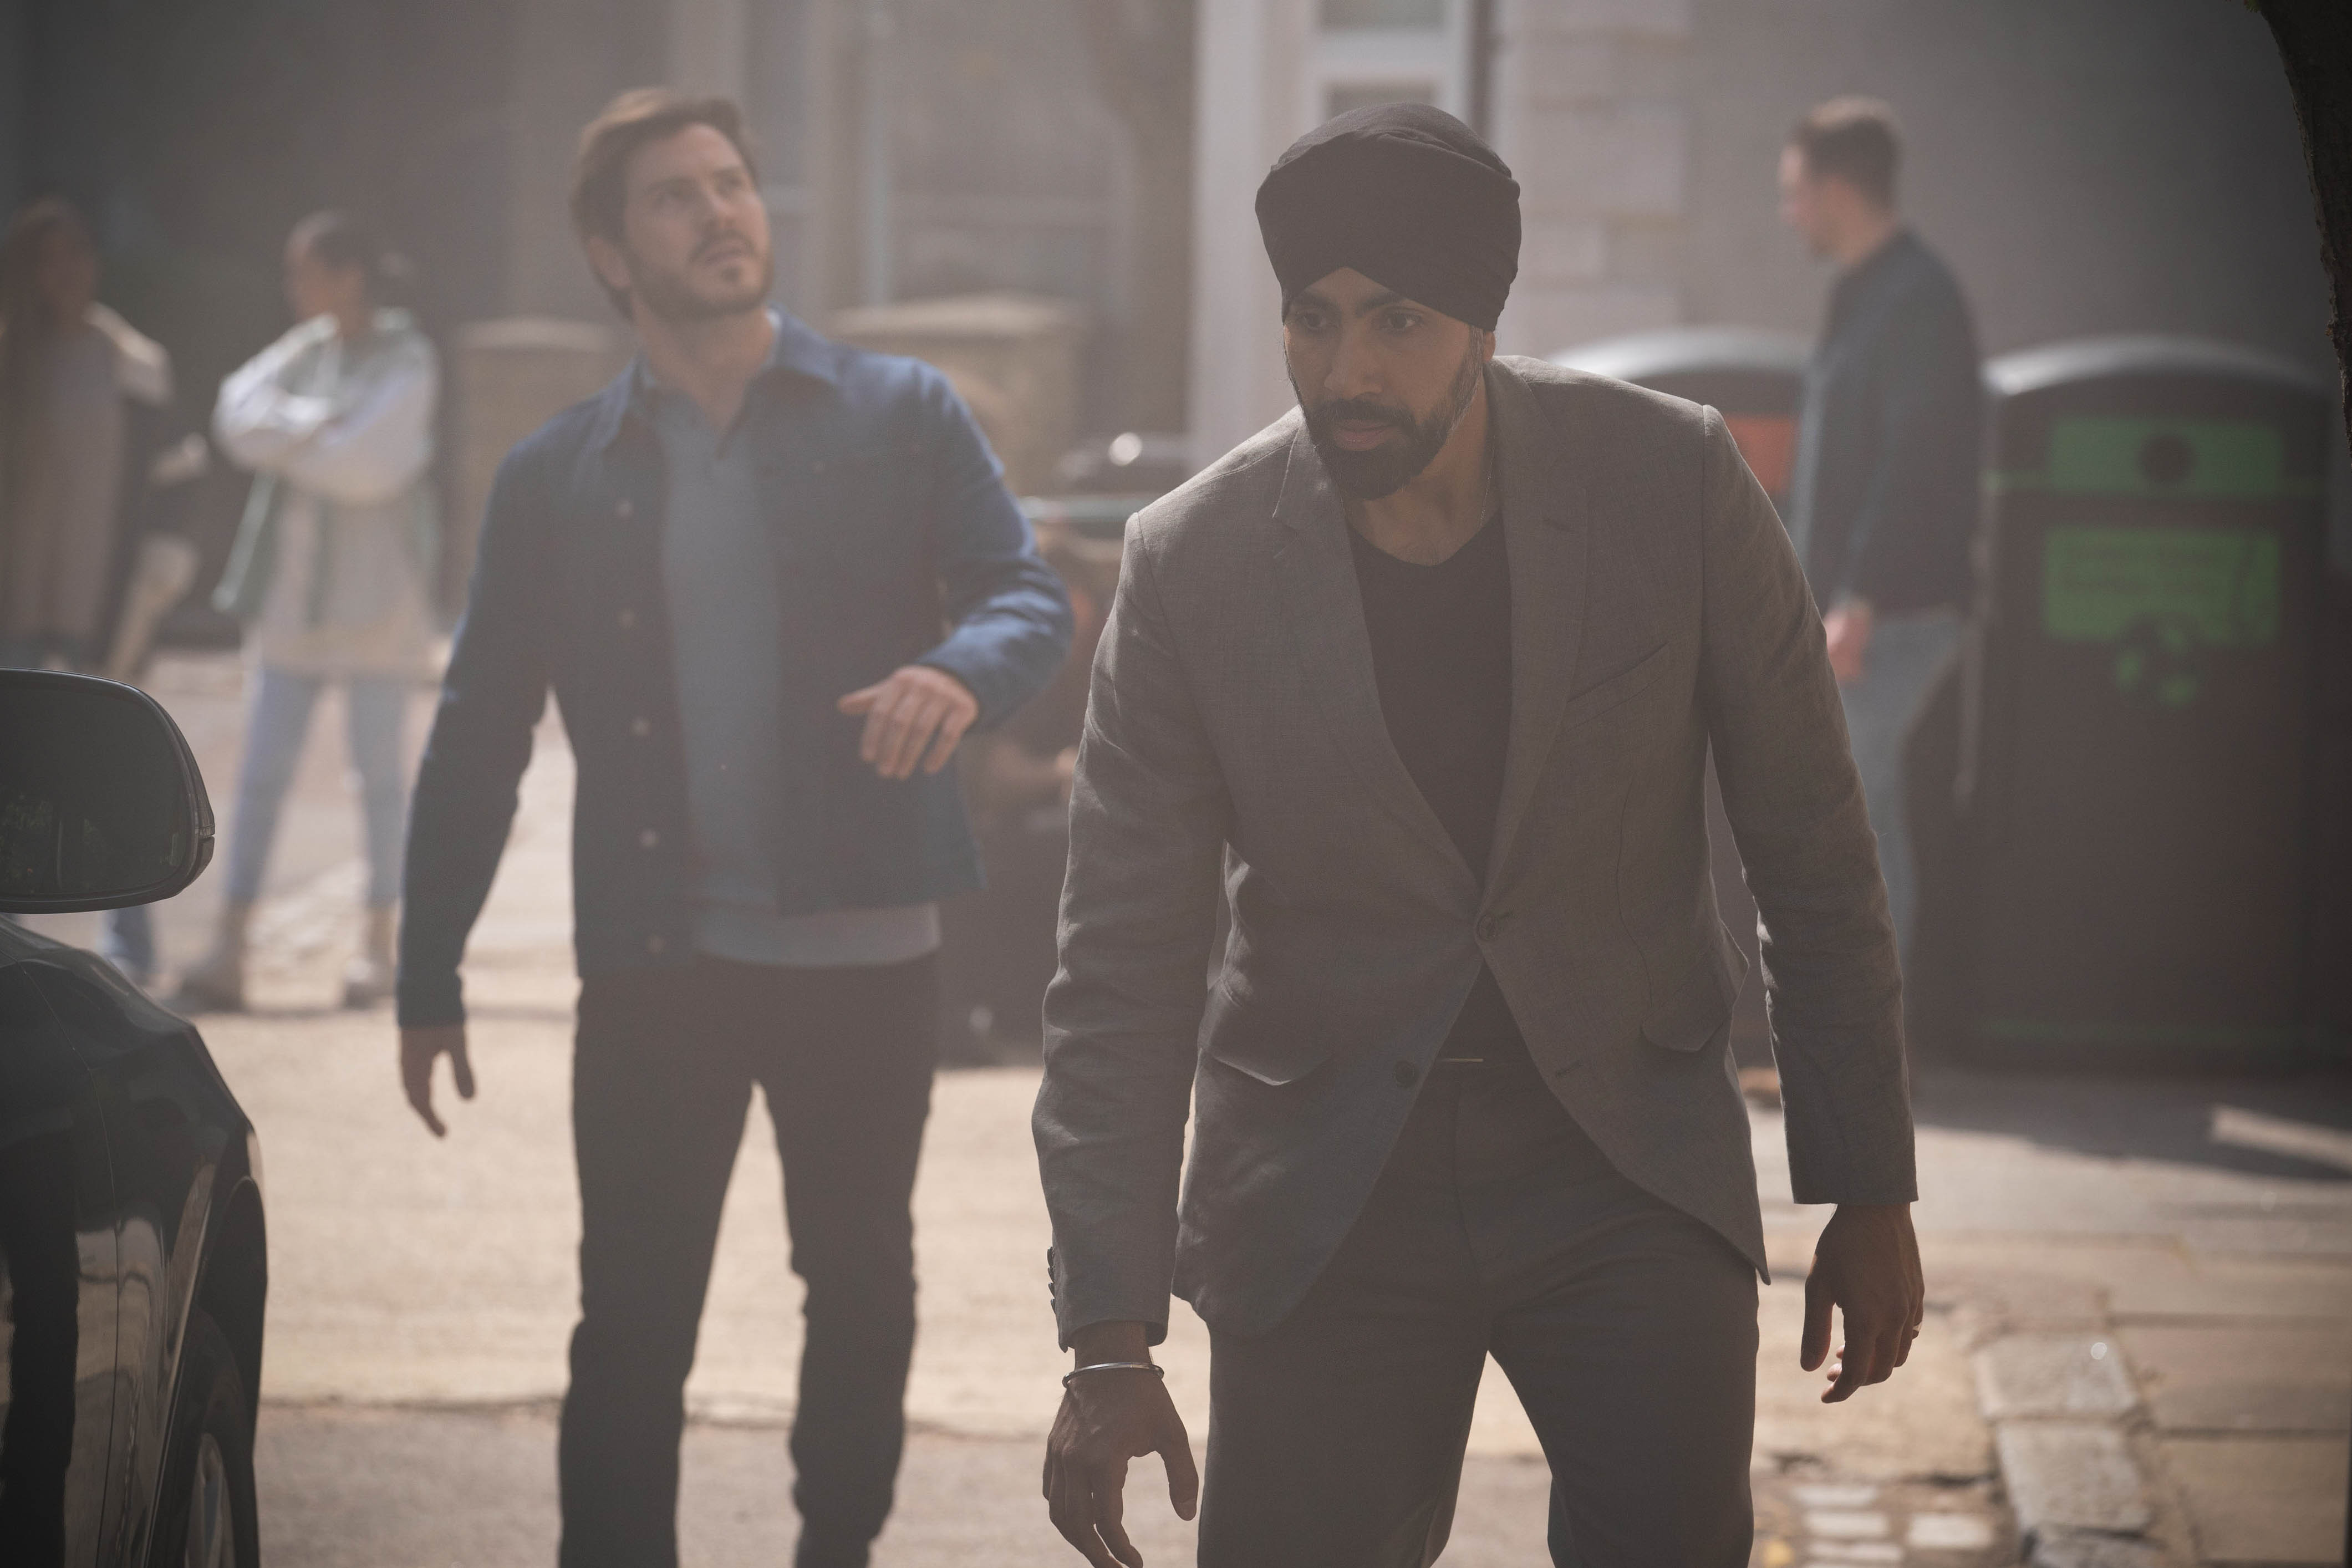 Kheerat Panesar and Gray Atkins head into the Mitchell house in EastEnders